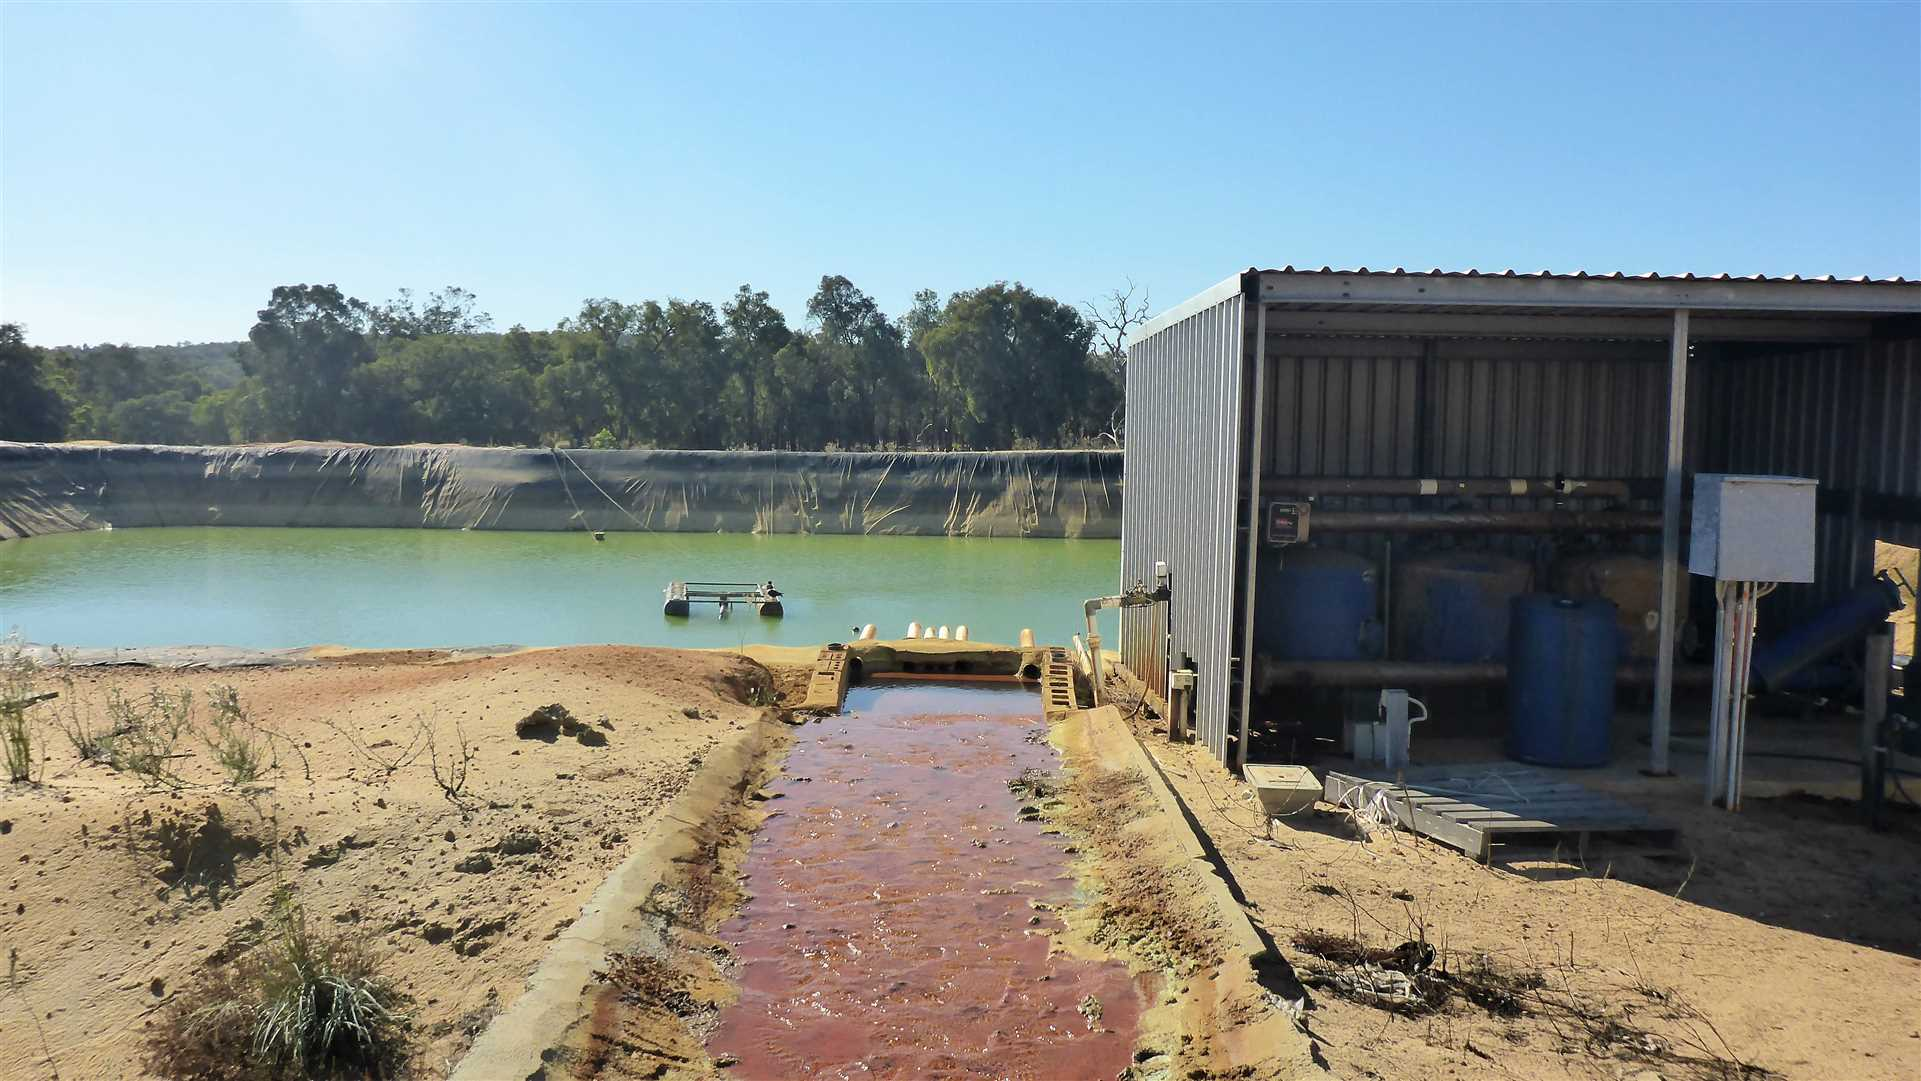 irrigation dam and filter / pump shed